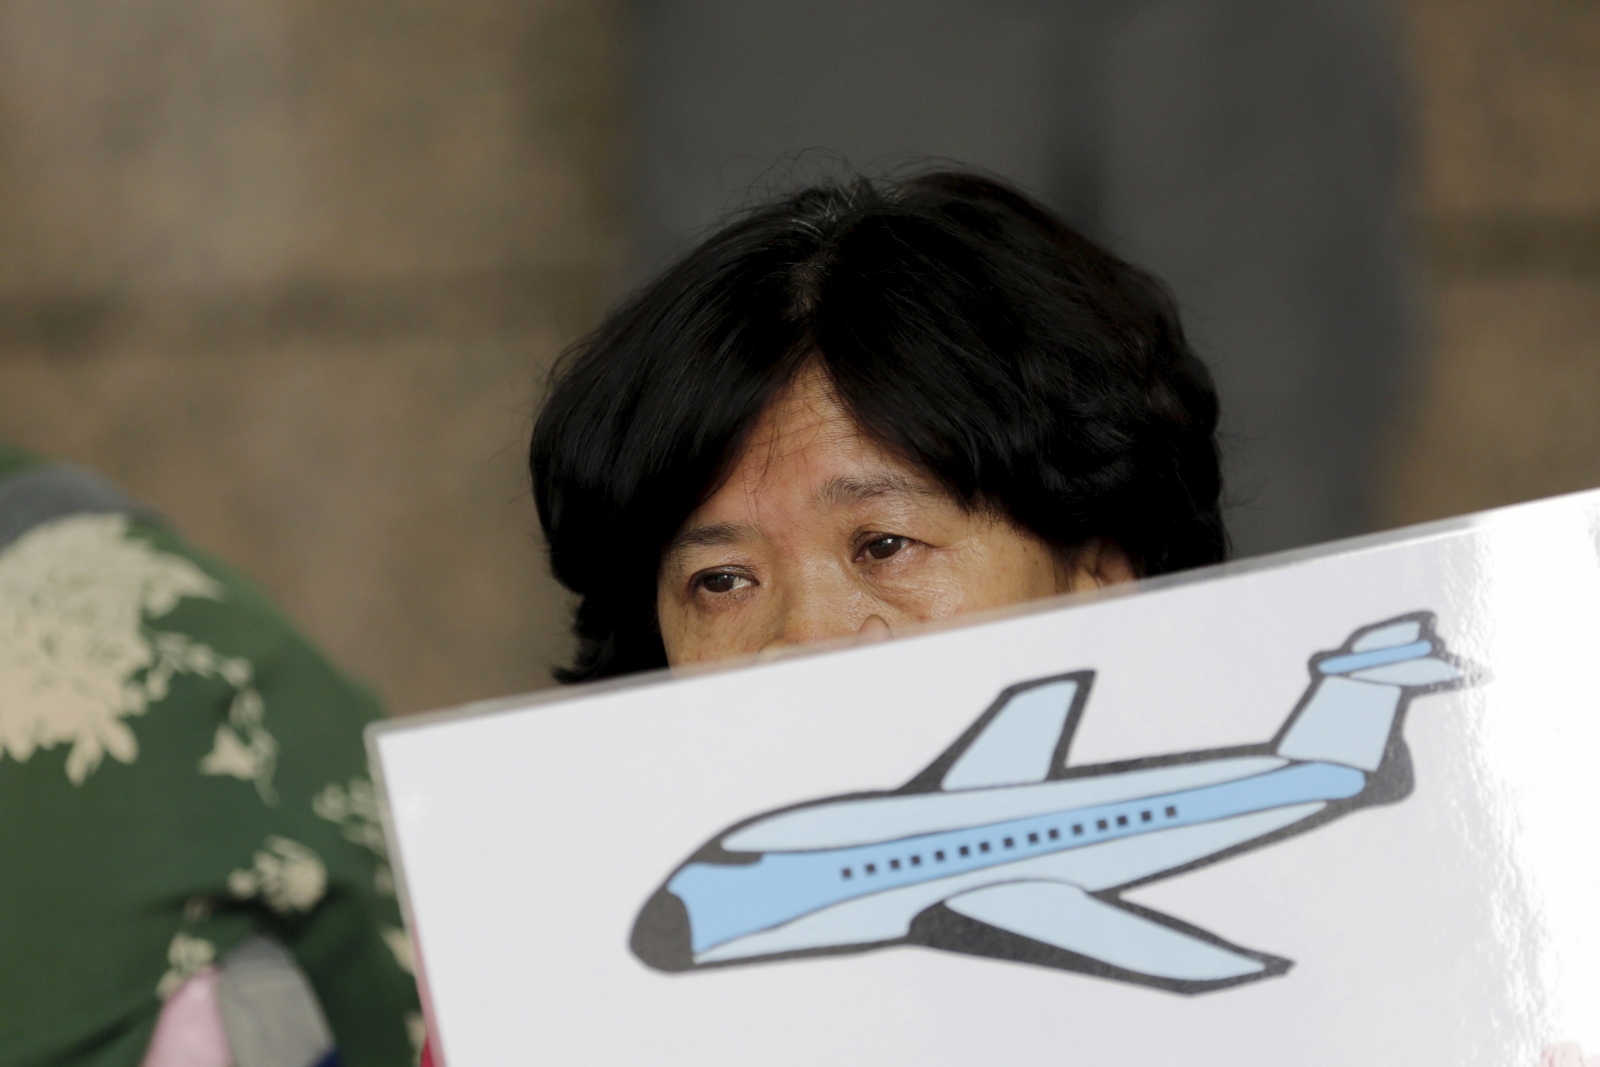 Malaysia Airlines MH370 Reunion Island